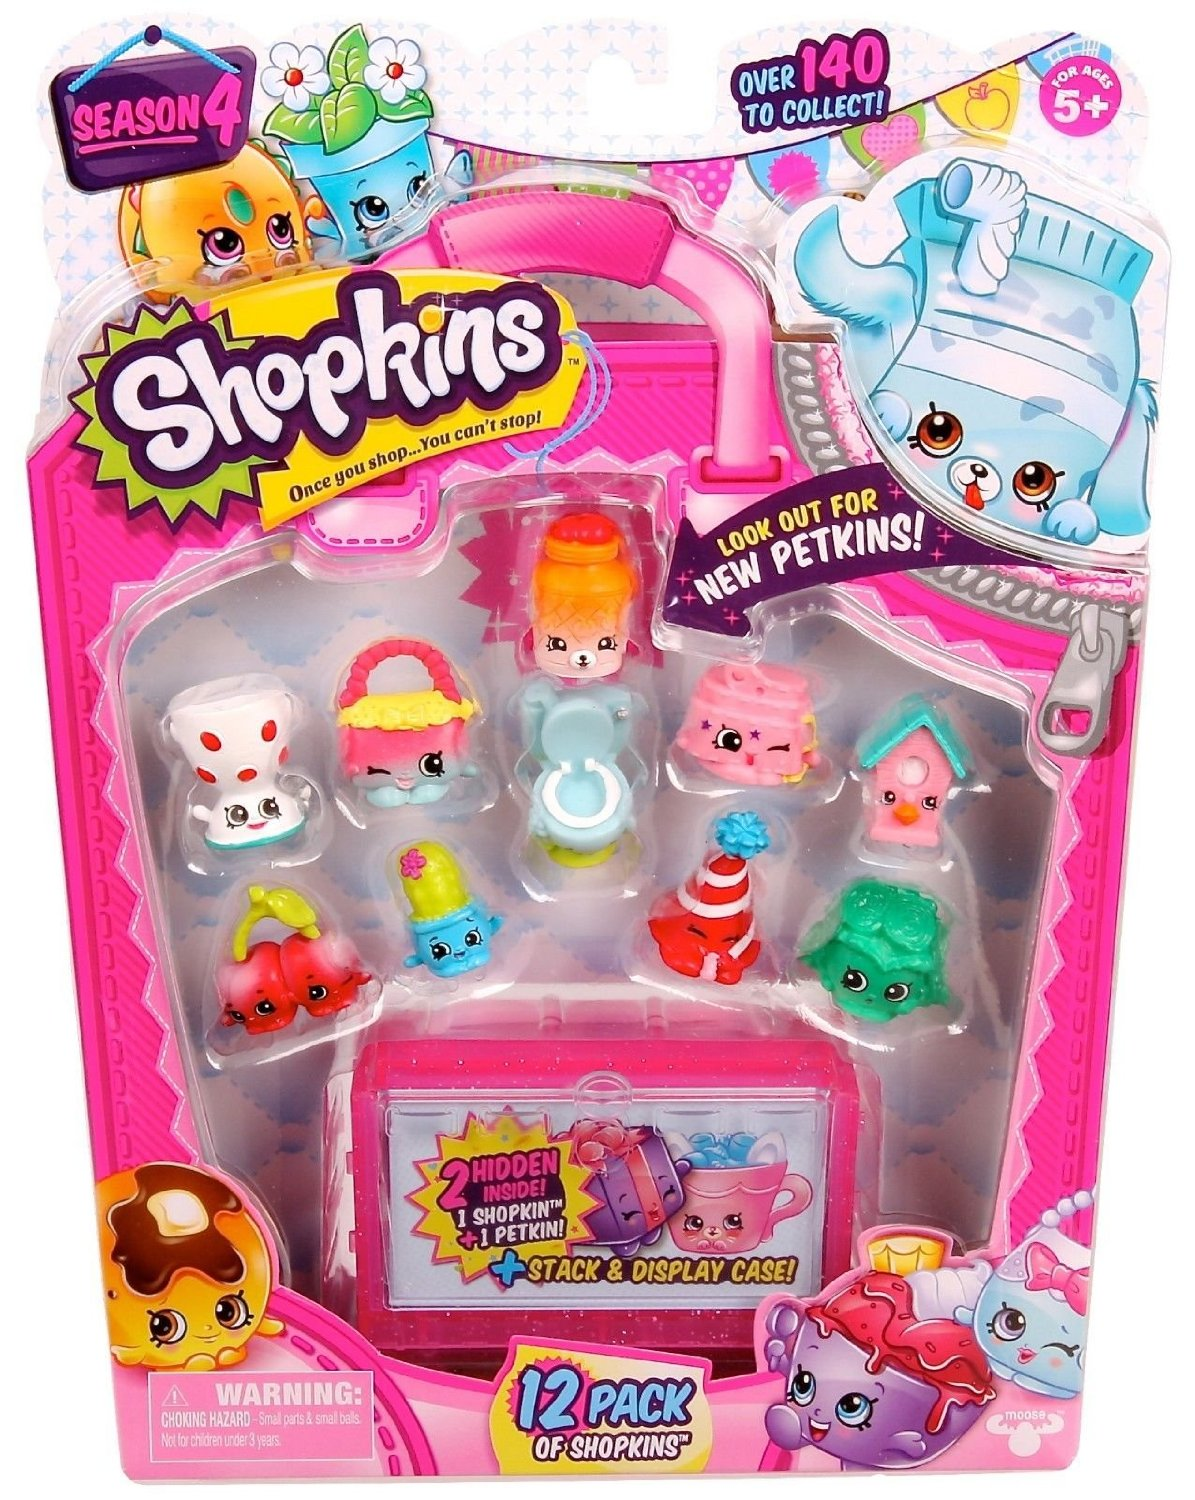 Online toys purchase